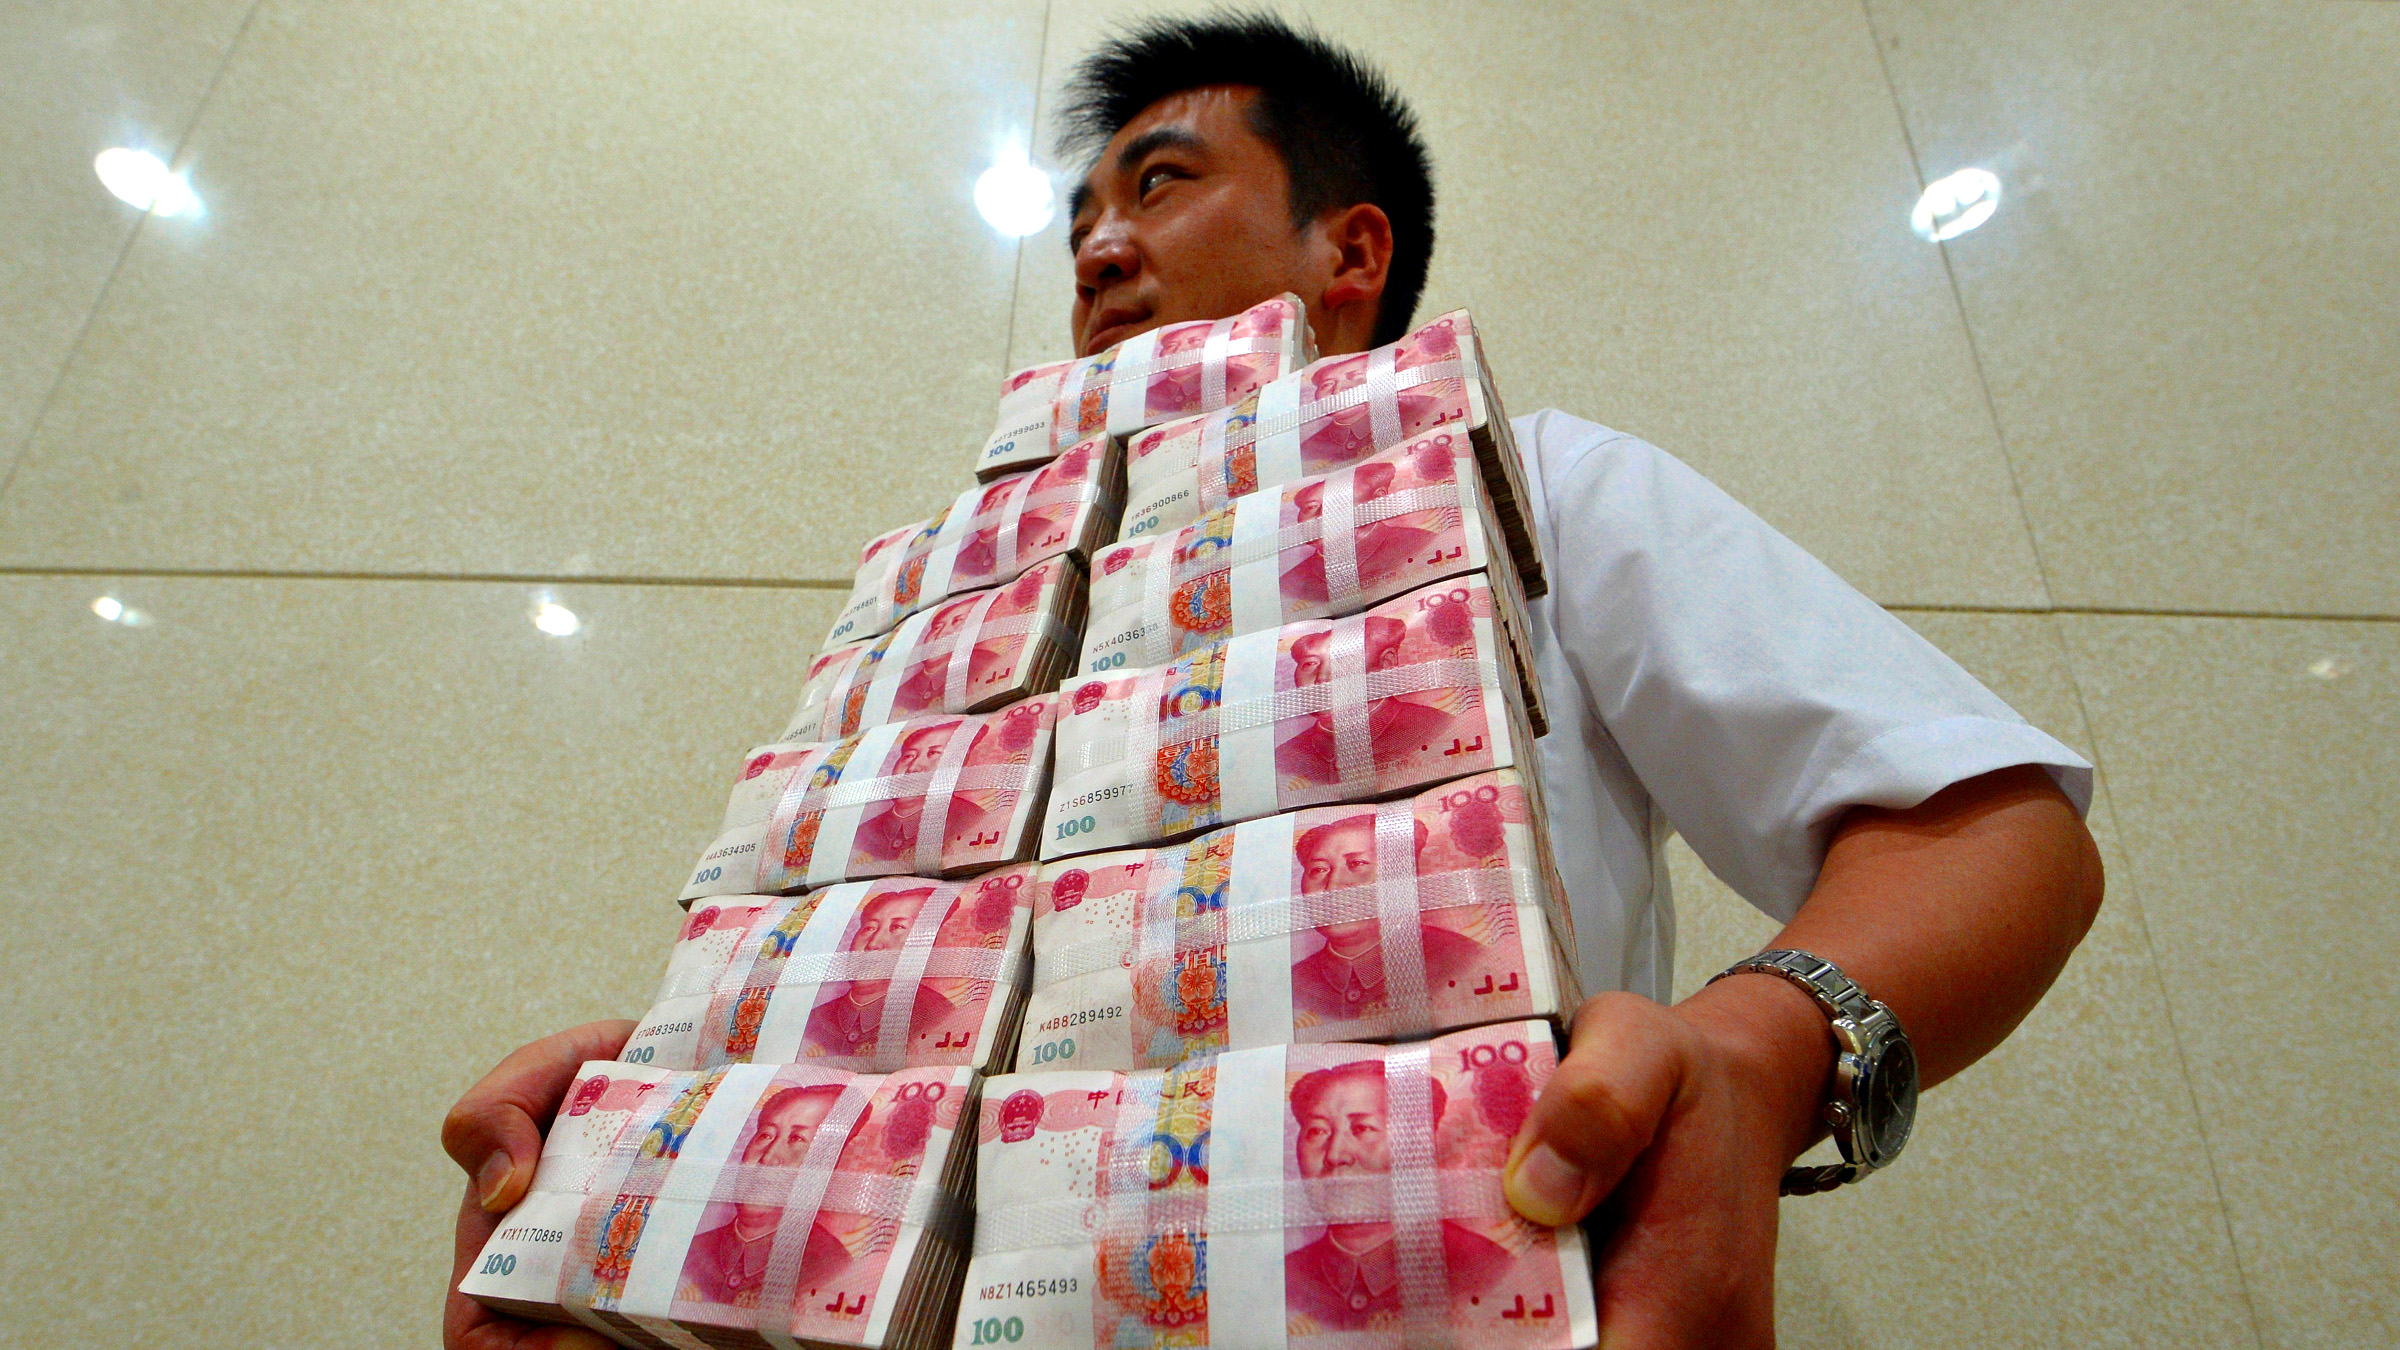 An employee carries bundles of 100 yuan Chinese bank notes to store after counting at a bank in Taiyuan, Shanxi province July 4, 2013. Chinese authorities allowed short-term borrowing costs to spike to record levels on June 20, sending a blunt but effective message to banks that it was determined to bring risky credit growth under control. The crackdown, however, has only increased China Inc's reliance on shadow banking and its various components, underscoring the system's importance as China's rigid financial industry maneuvers through an economic slowdown.